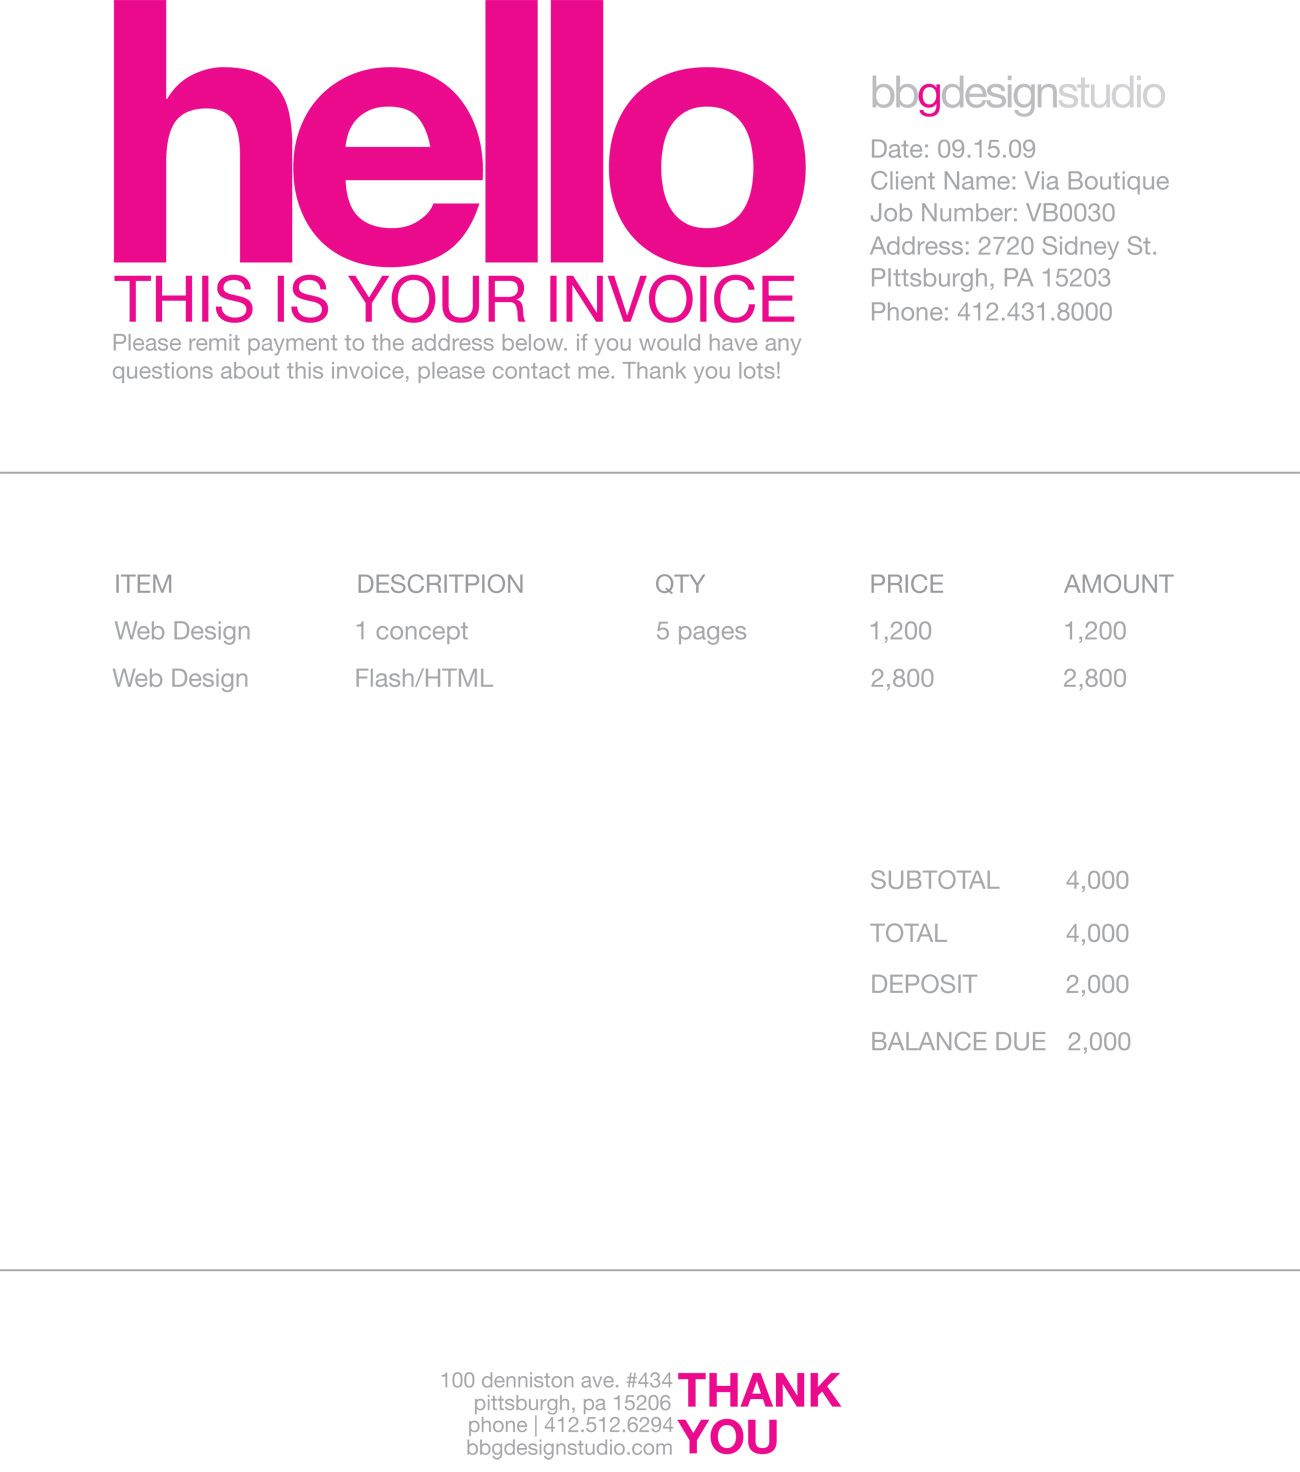 Totallocalus  Gorgeous  Images About Invoice Design On Pinterest With Remarkable Carpet Cleaning Invoice Besides Definition Invoice Furthermore Paid Invoice Template With Divine Net  Invoice Also Payment Invoice In Addition Invoice Email And Printable Blank Invoice As Well As Invoice Email Template Additionally Invoice Letter From Pinterestcom With Totallocalus  Remarkable  Images About Invoice Design On Pinterest With Divine Carpet Cleaning Invoice Besides Definition Invoice Furthermore Paid Invoice Template And Gorgeous Net  Invoice Also Payment Invoice In Addition Invoice Email From Pinterestcom